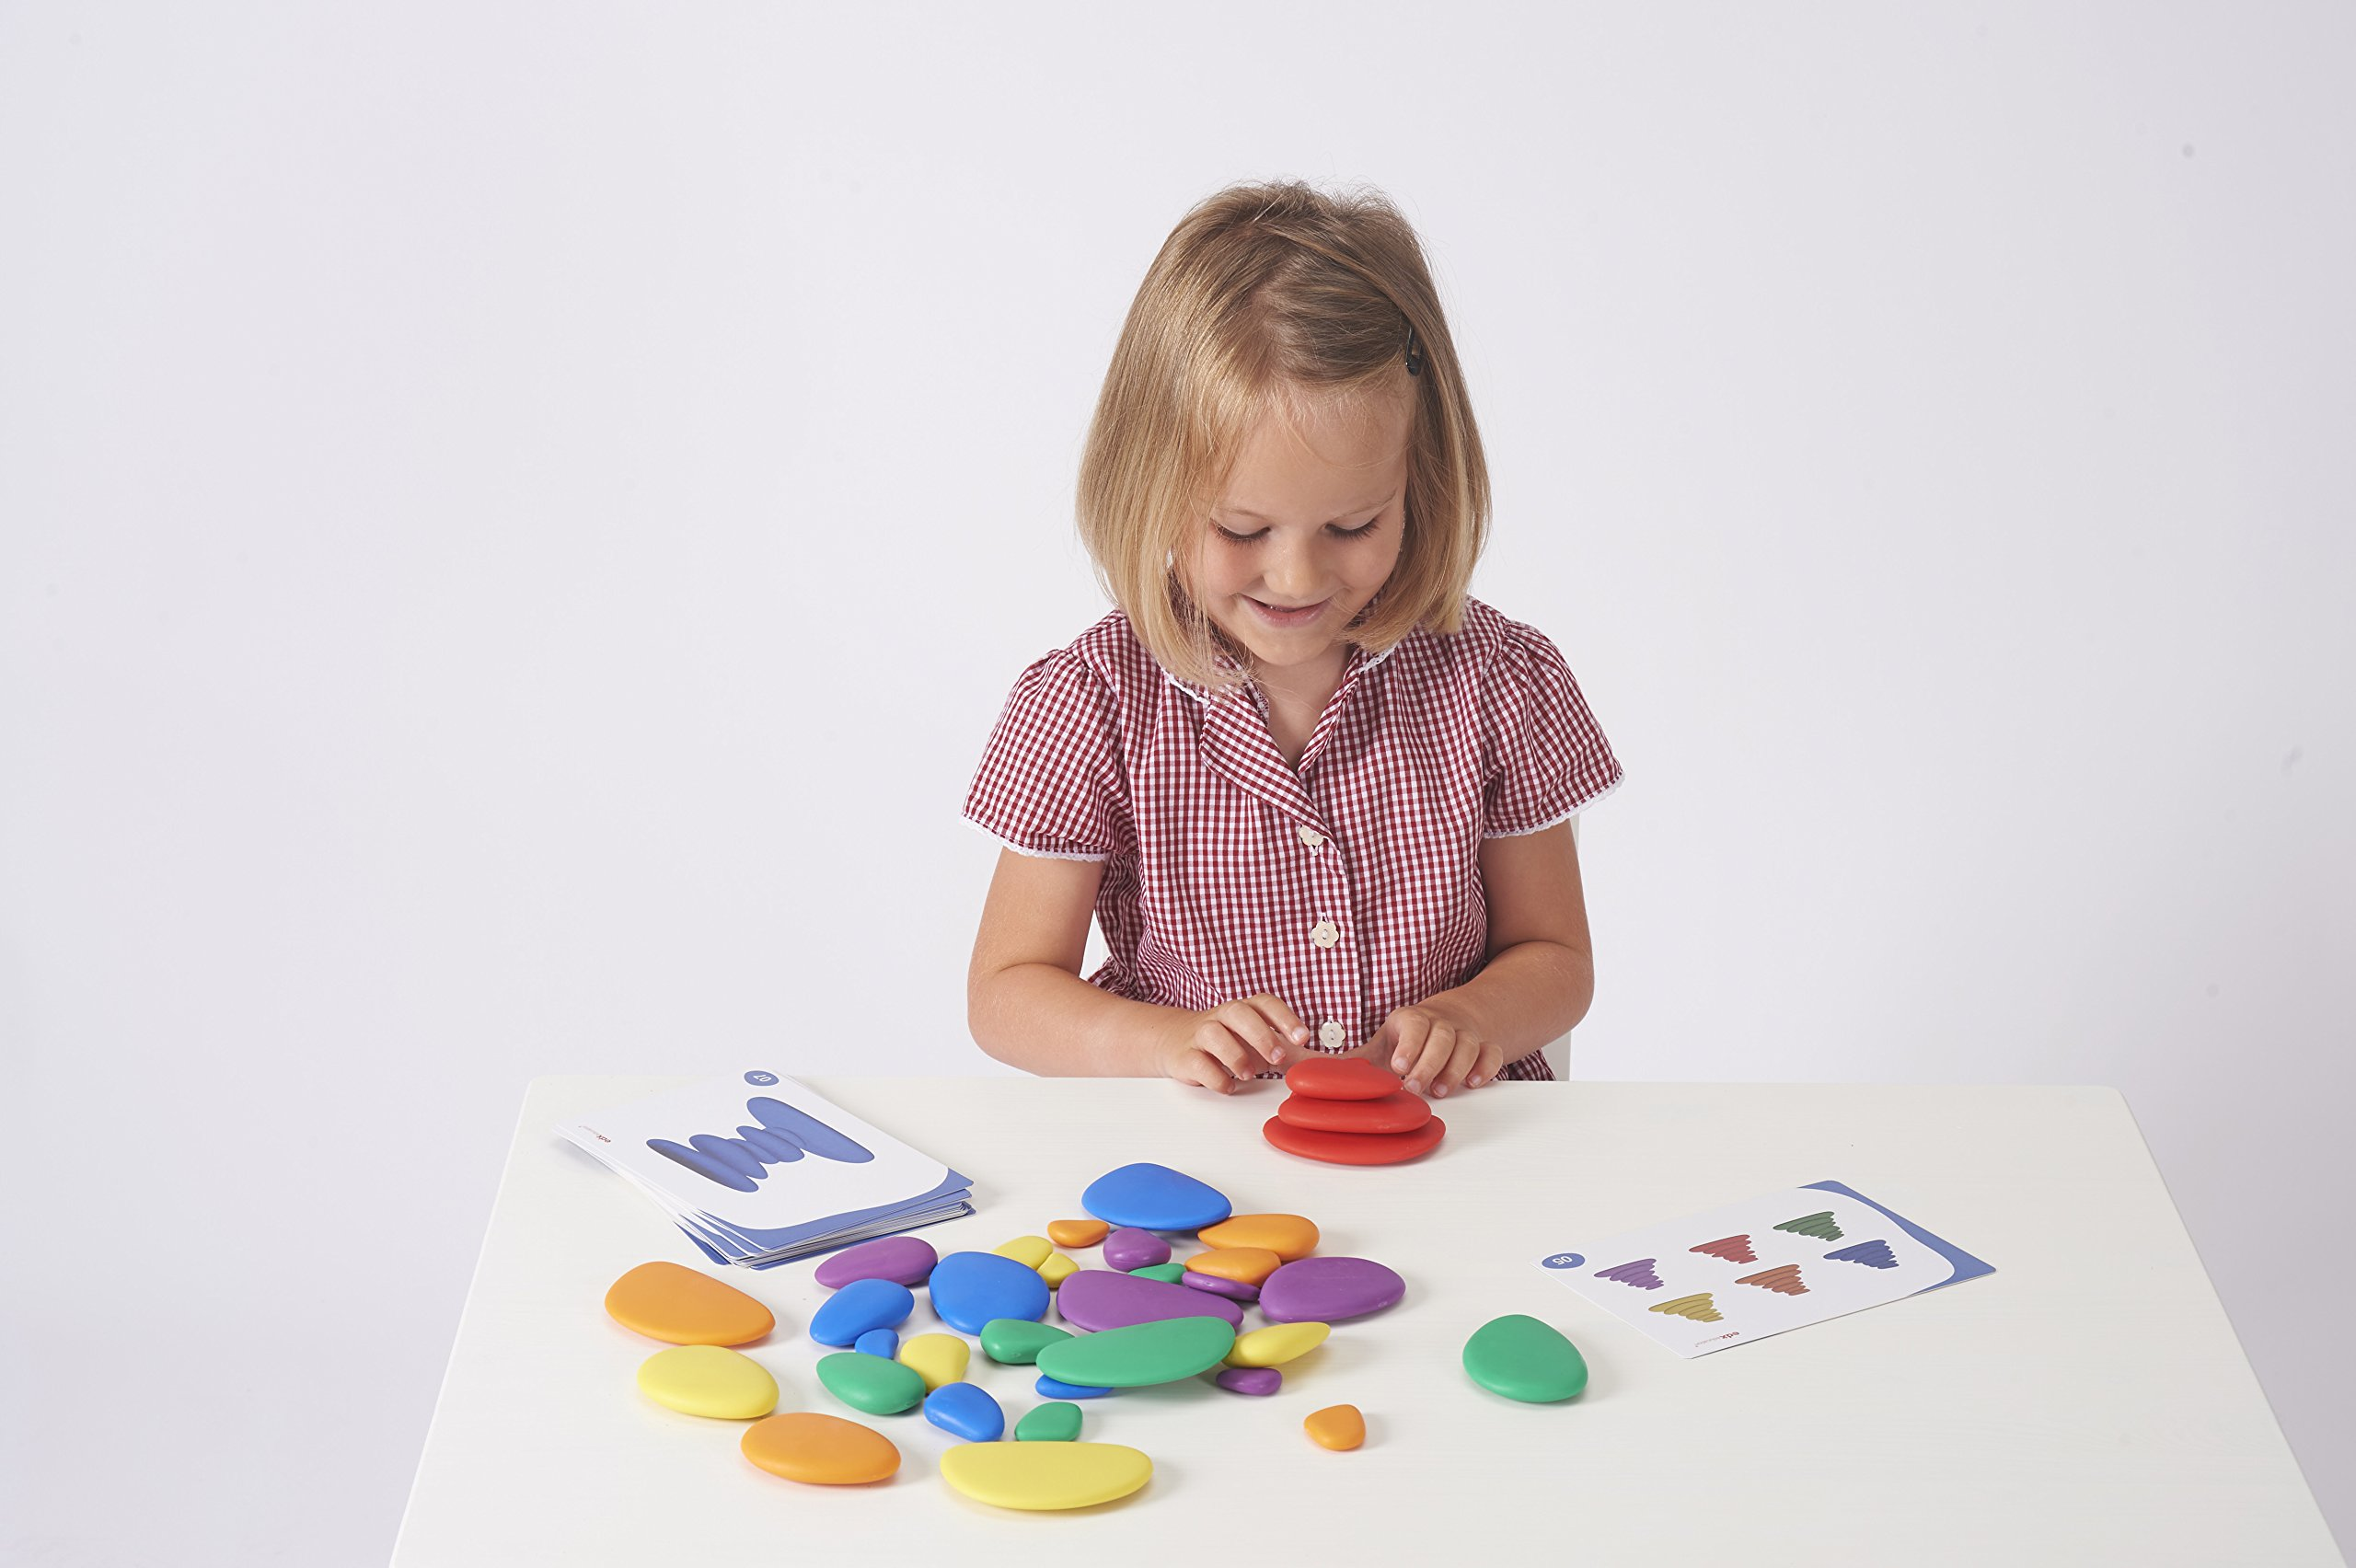 edx Education Rainbow Pebbles - Sorting and Stacking Stones by edxeducation (Image #9)